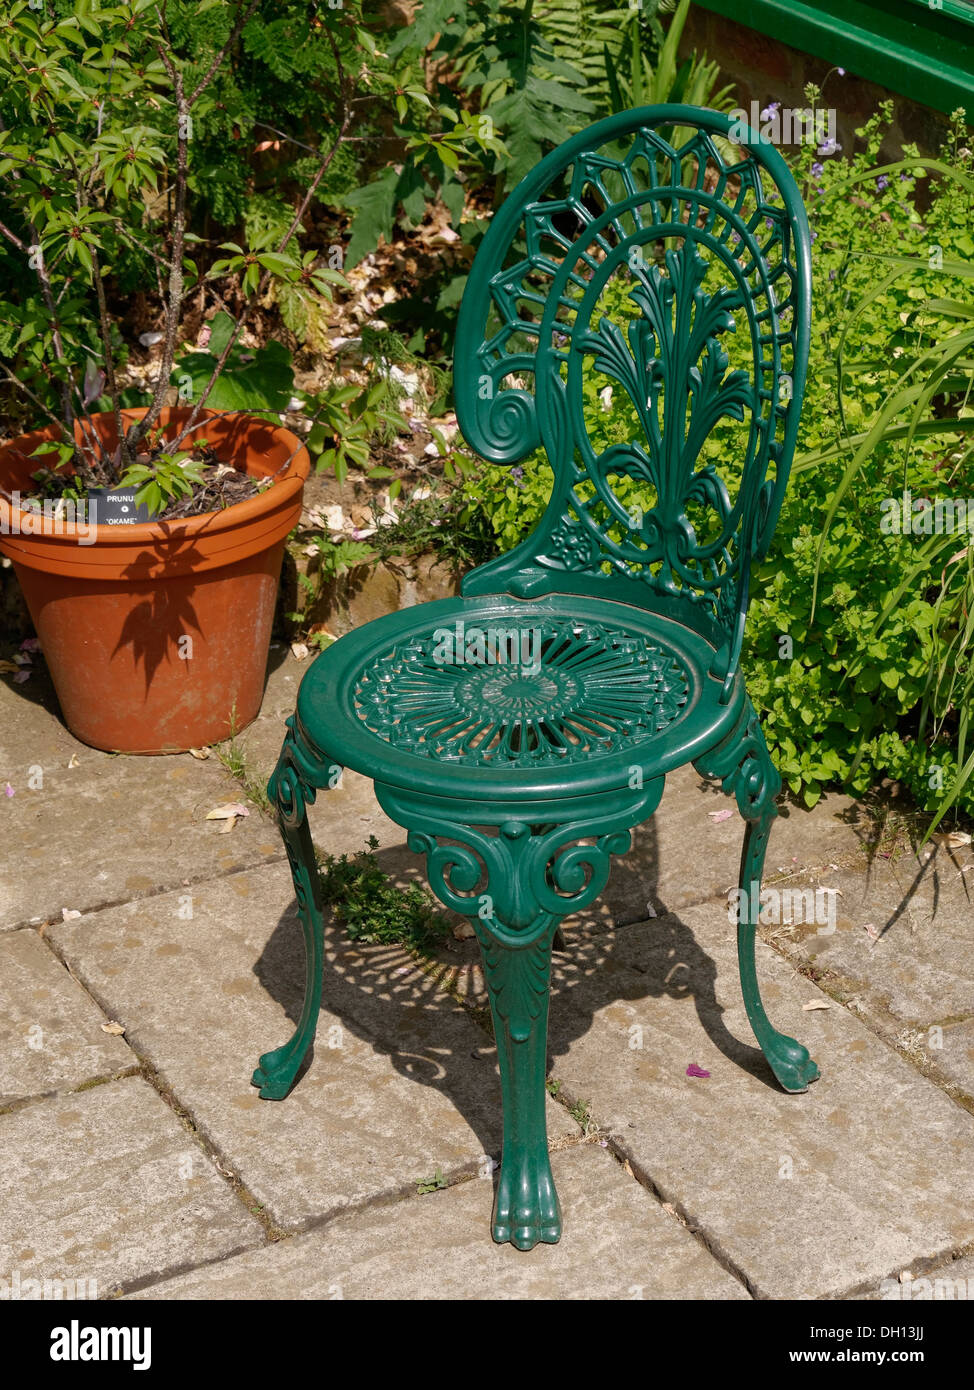 iron outdoor chairs upholstered for sale green painted ornate cast metal garden chair on slabbed patio stock barnsdale gardens oakham rutland england uk